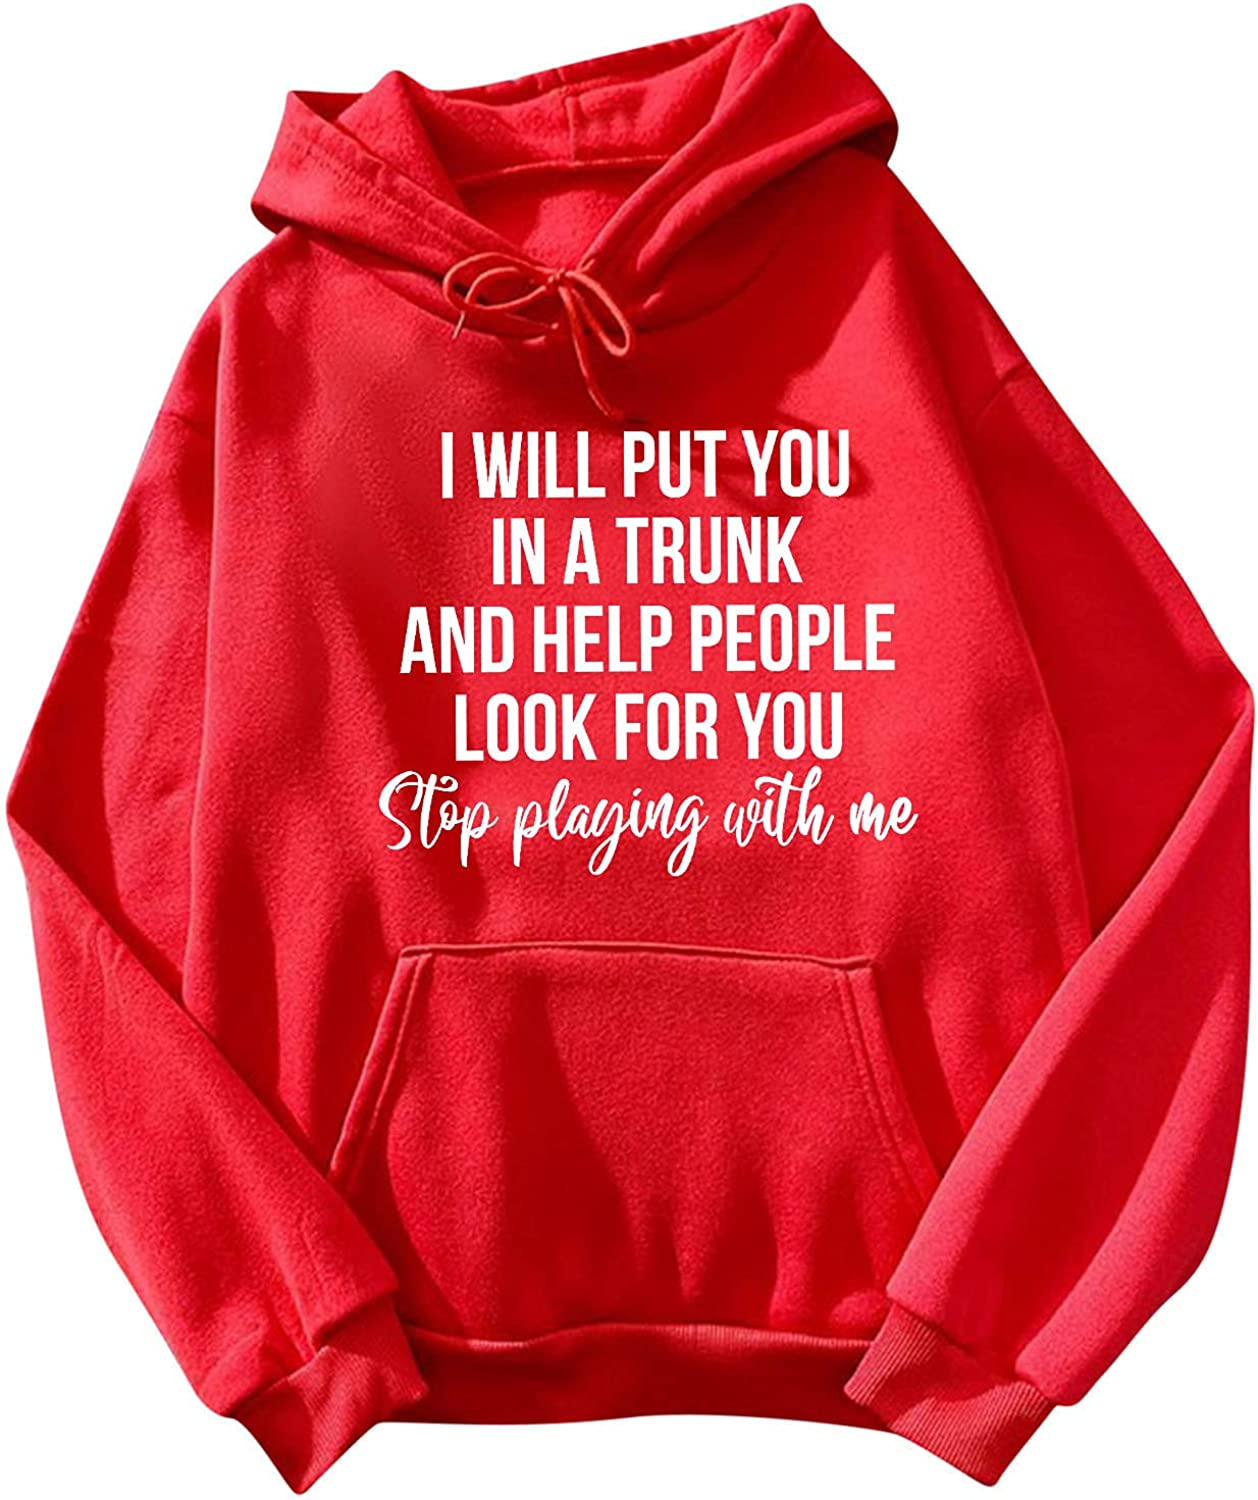 iLUGU Casual Hooded Sweatshirt, Women's I WILL PUT YOU IN A TRUNK Long Sleeve Front Pocket Drawstring Hoodies Pullover